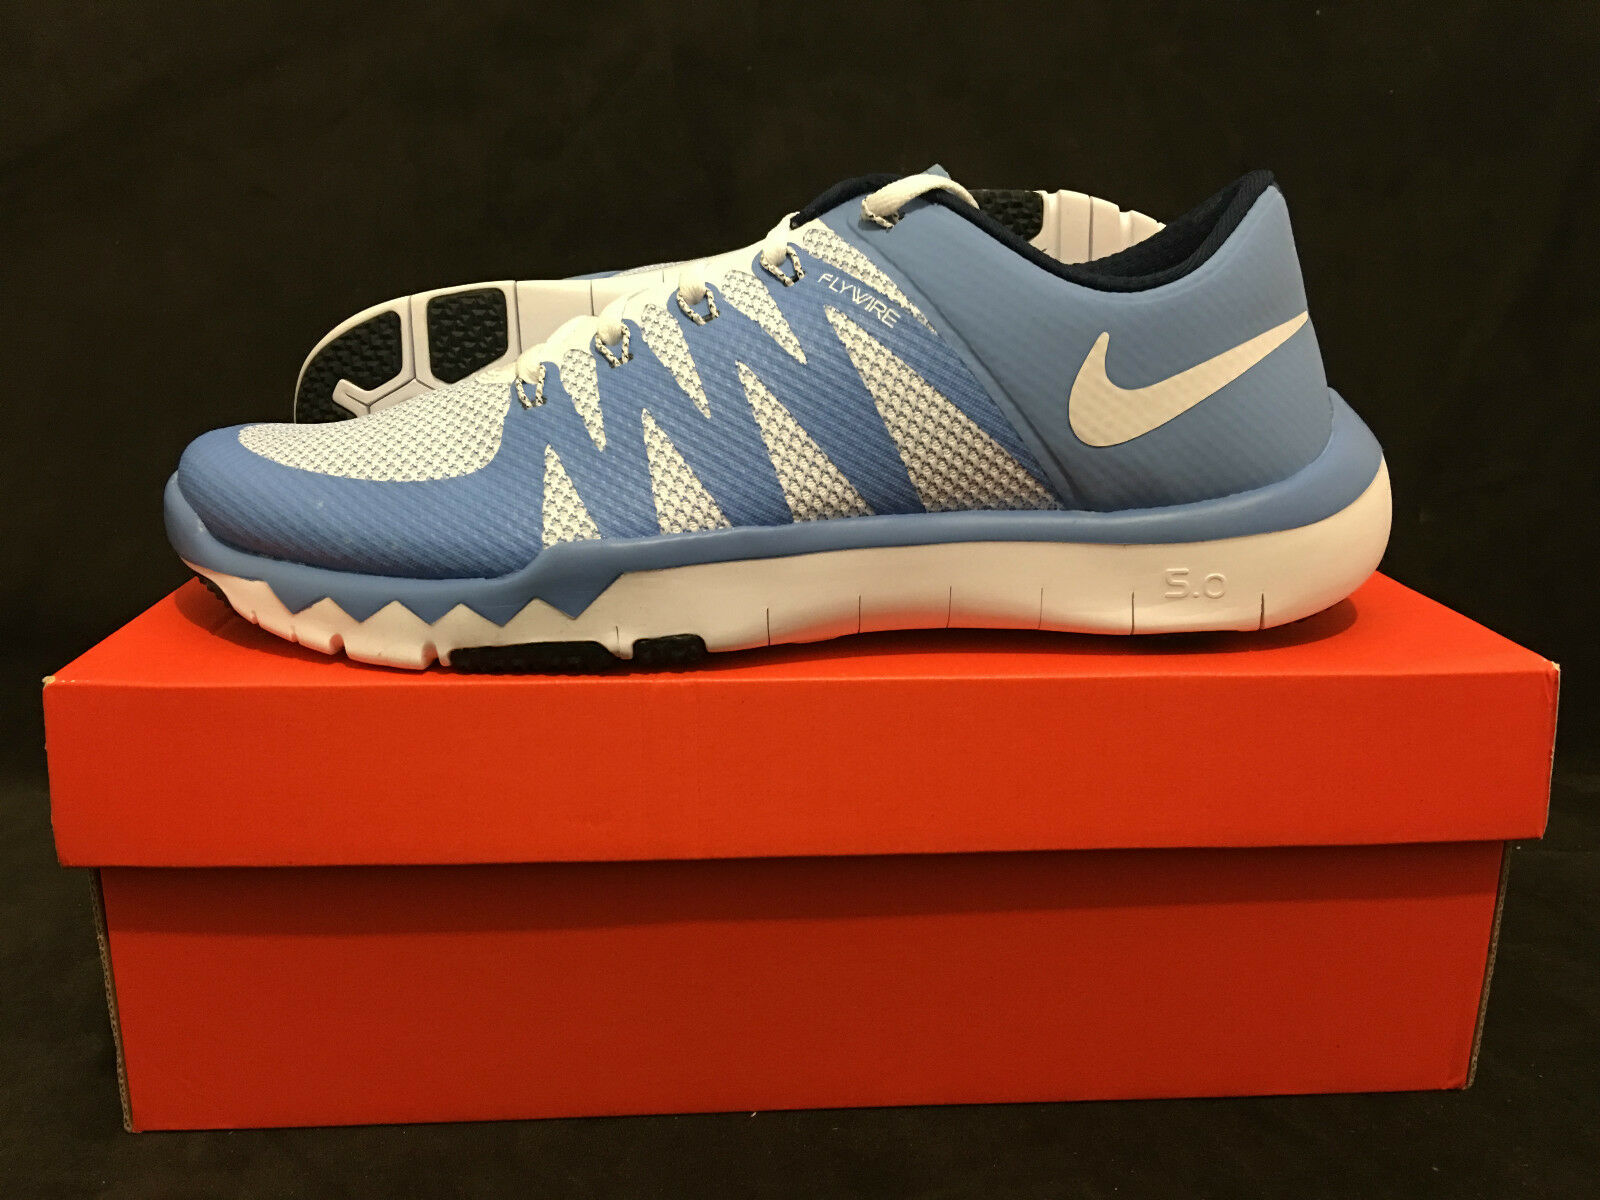 huge selection of 4db8f 91619 nike free trainer 5.0 unc